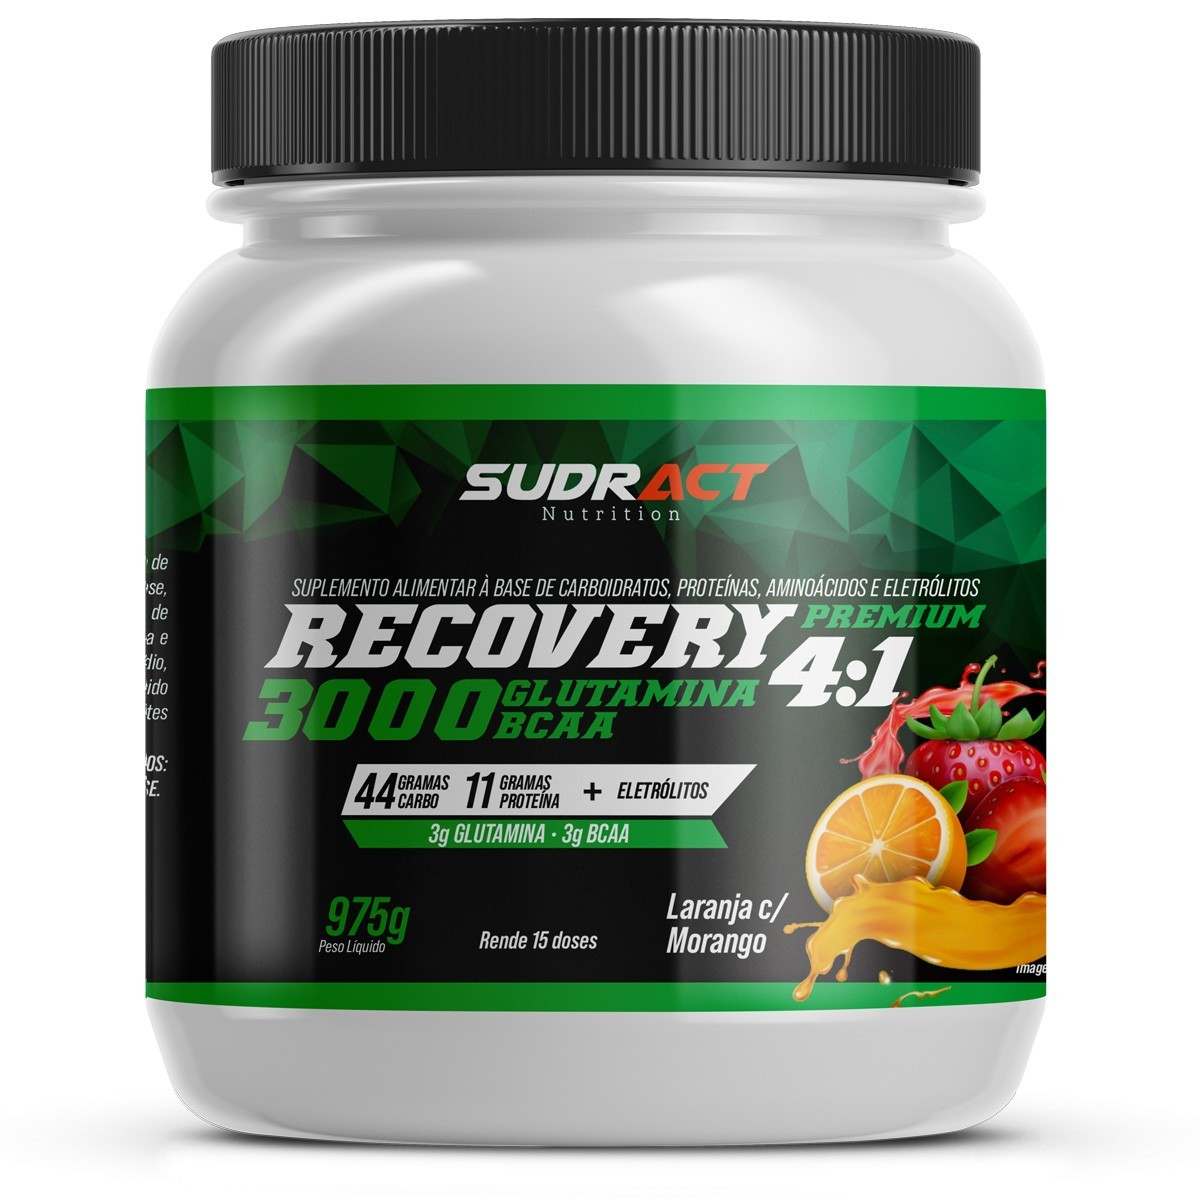 Recovery Premium 4:1 - Sudract Nutrition